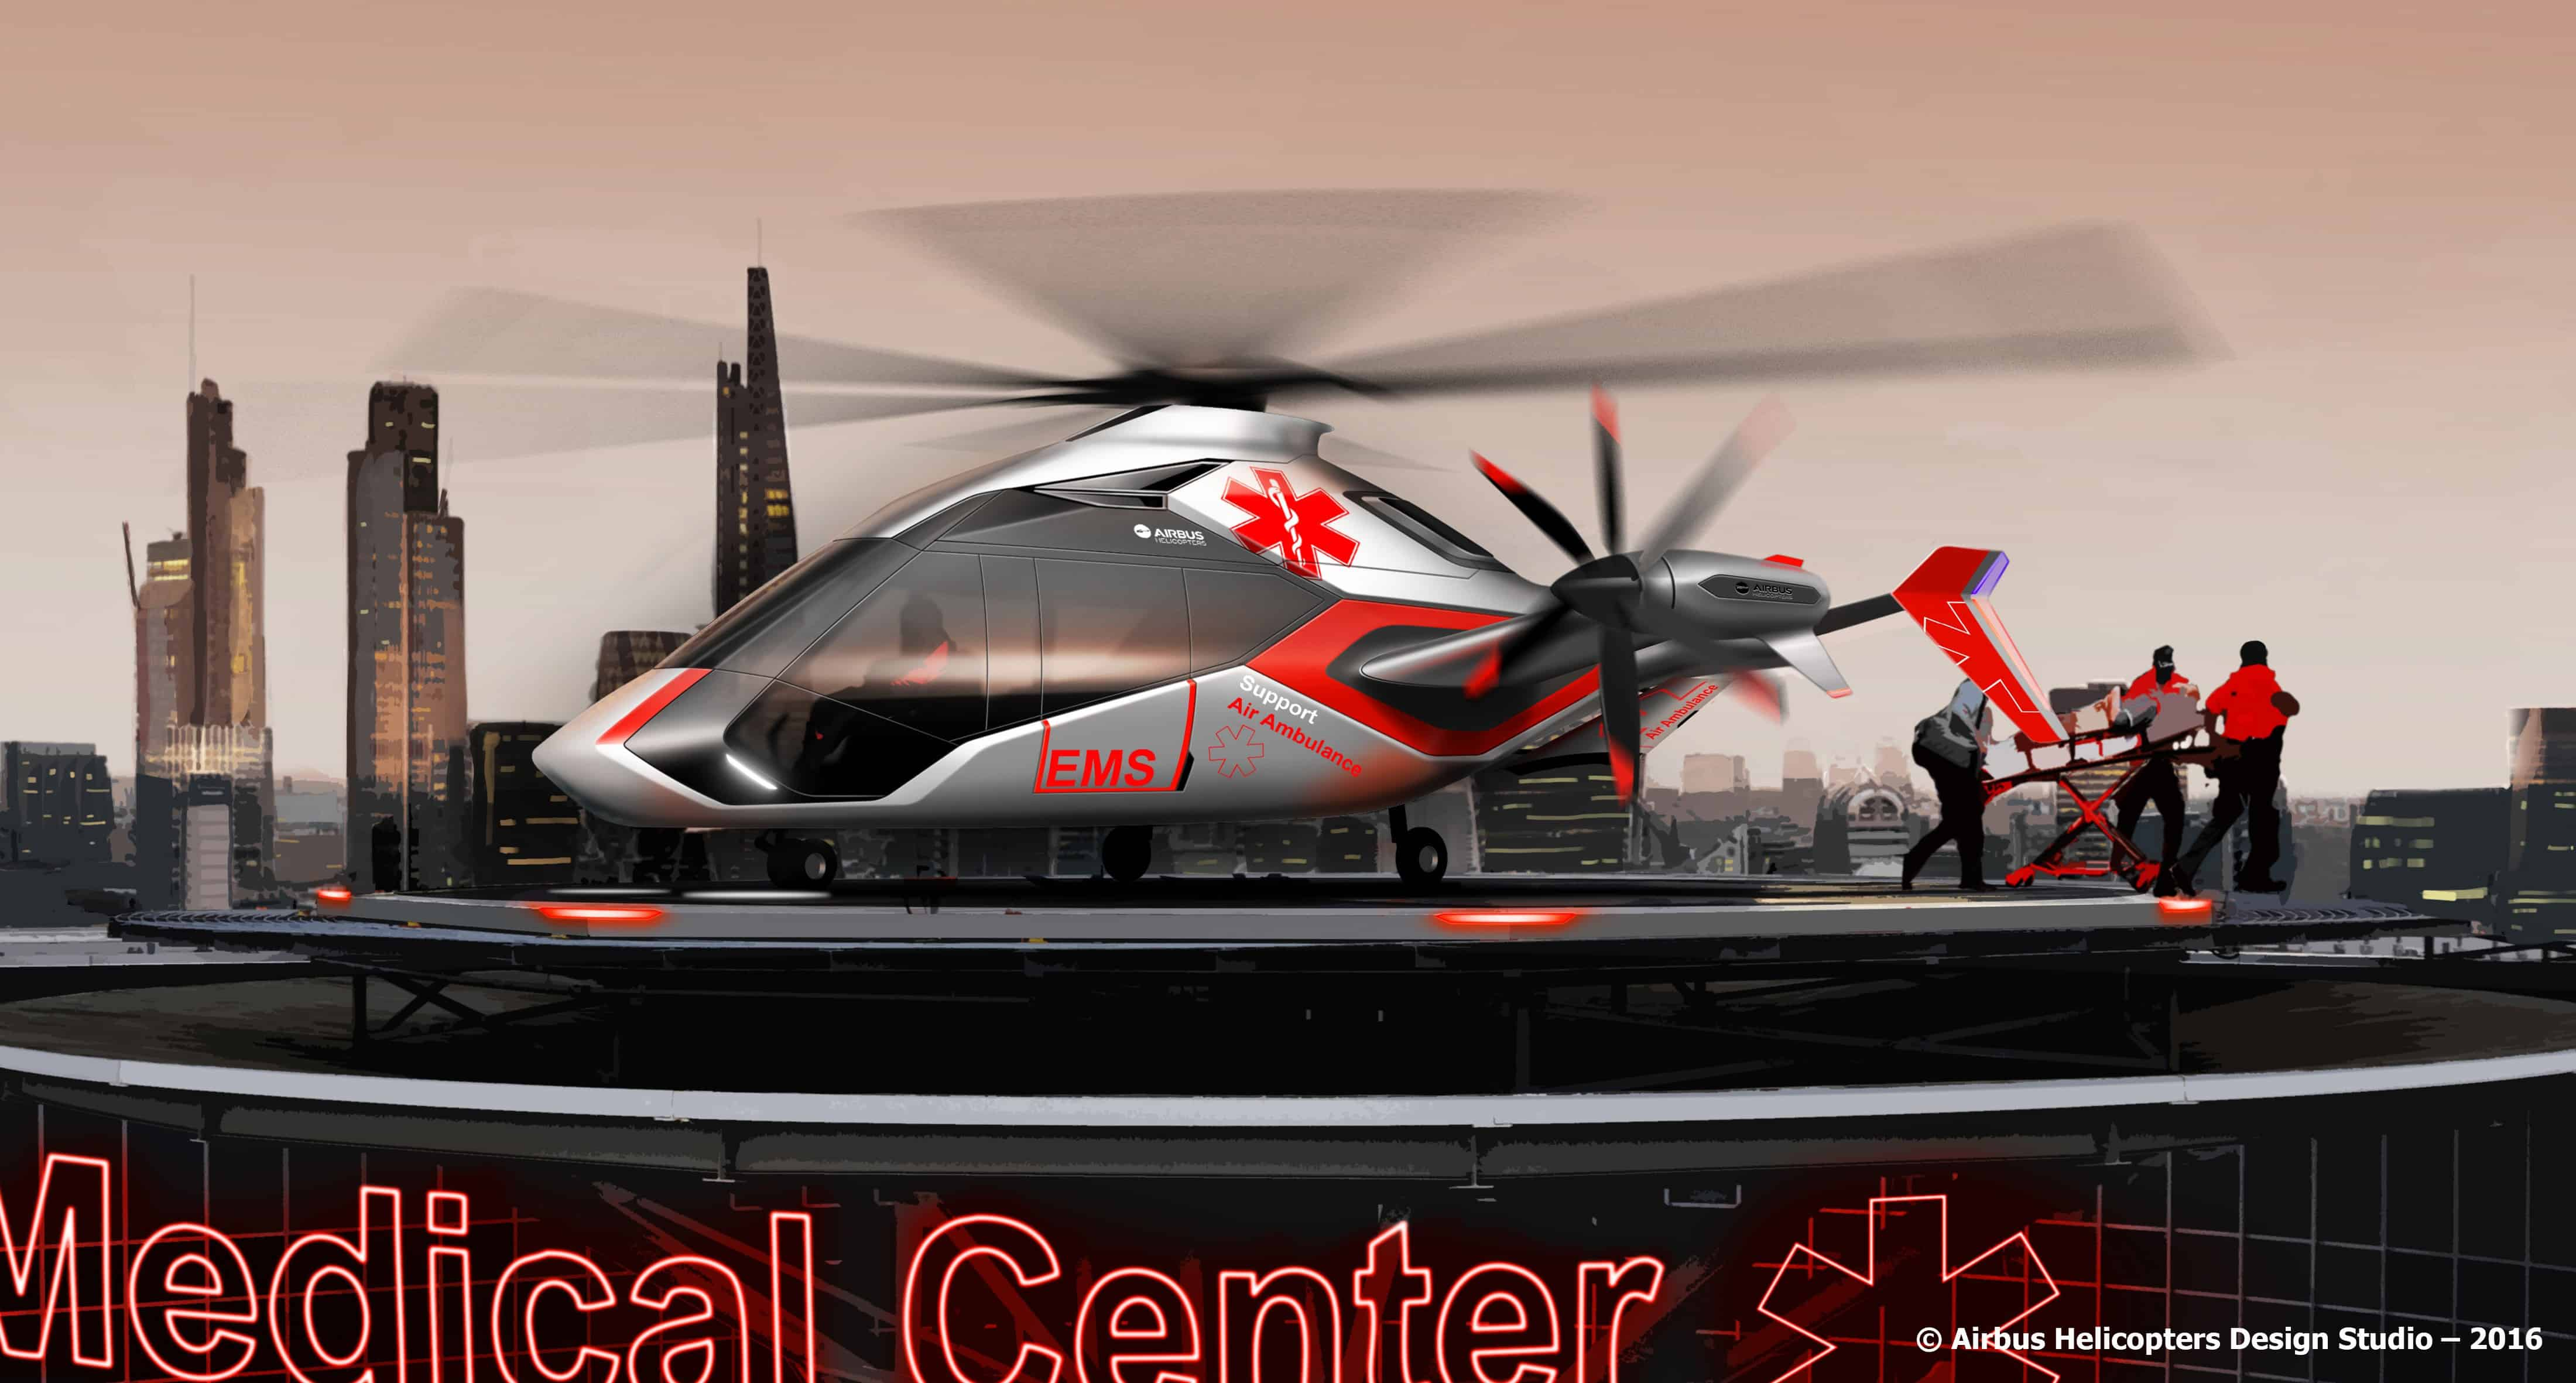 Emergency services are an important potential market for the new design